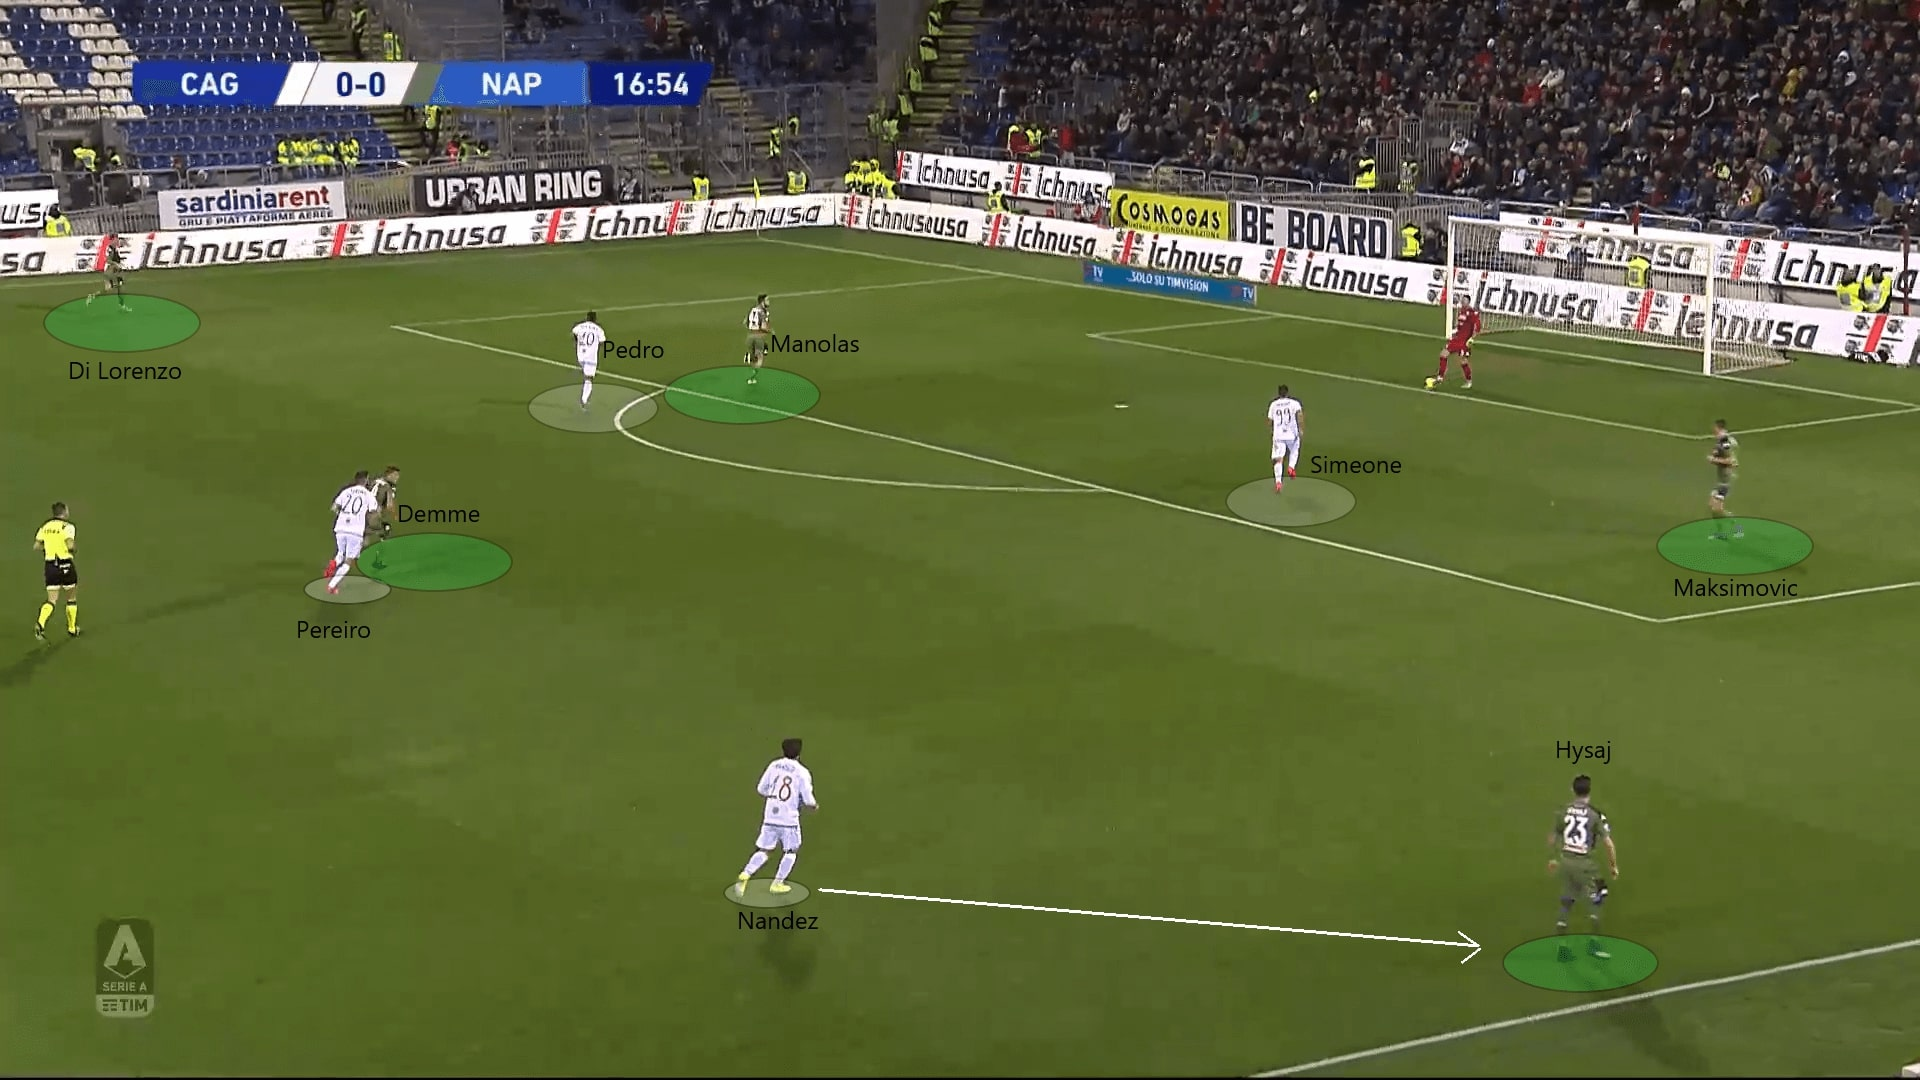 Serie A 2019/20: Cagliari vs Napoli - tactical analysis tactics